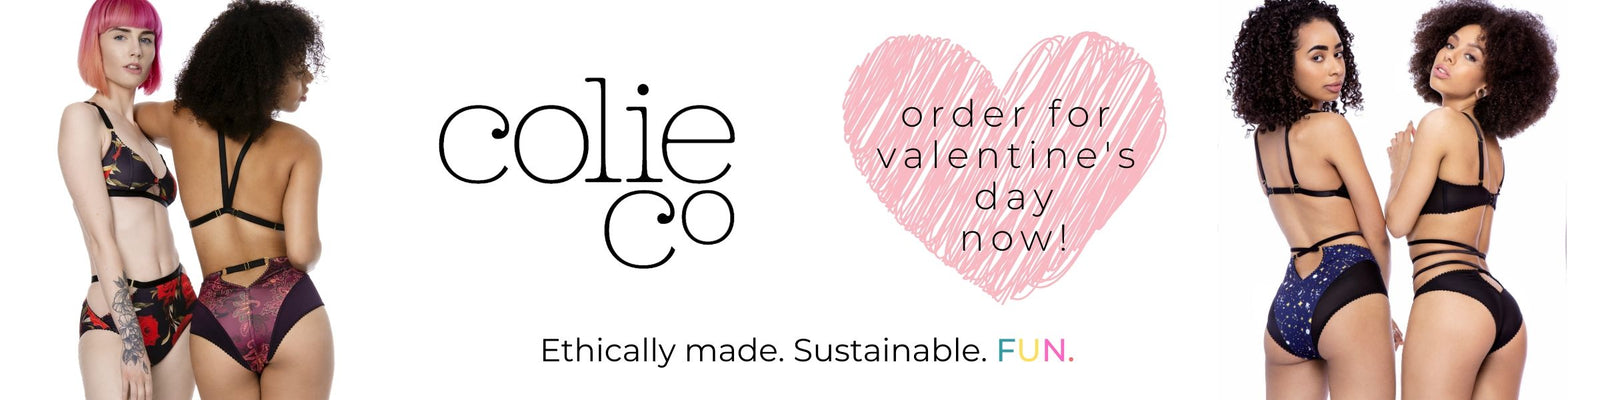 ColieCo Lingerie order now for Valentines Day